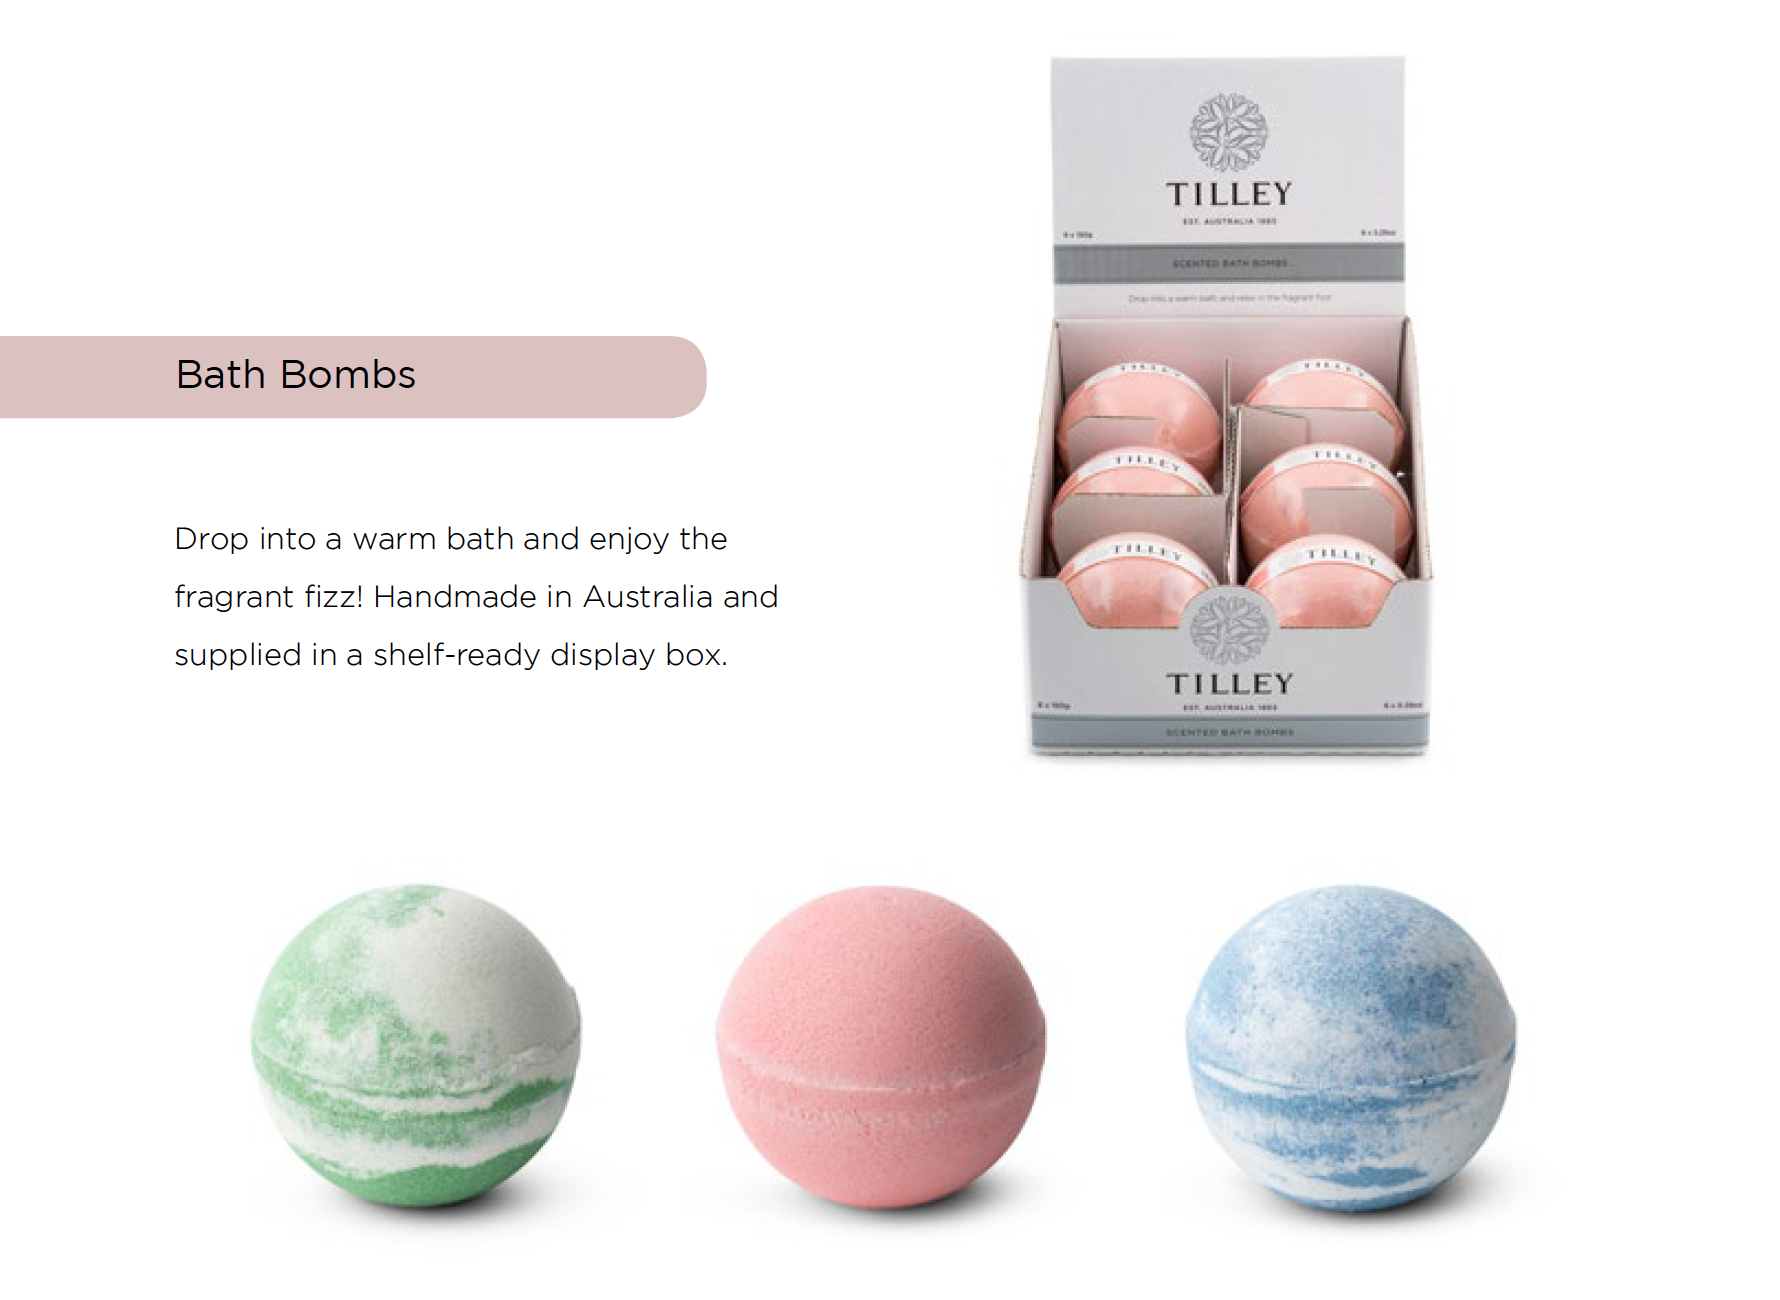 TILLEY-Bombe Da Bagno 150g-Fragrante Fizz-Bagno Fizzies-Classic White Collection-Bath & Body